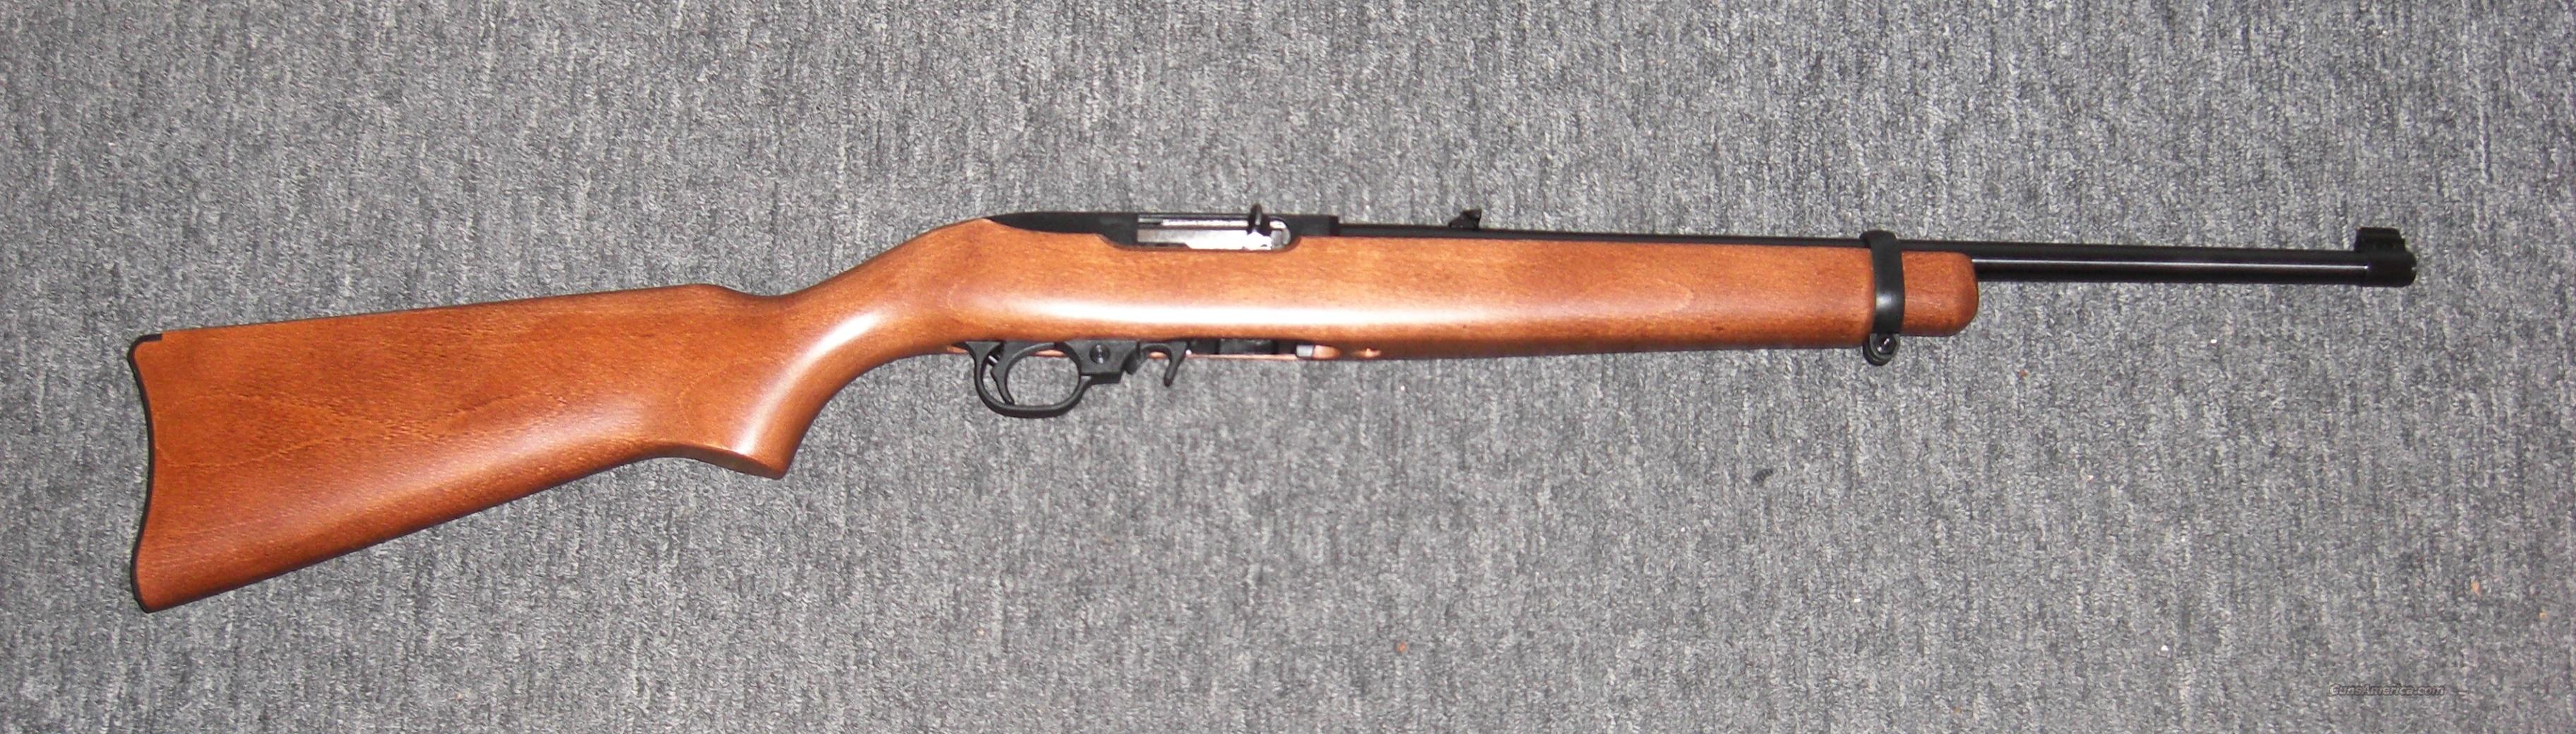 10/22   Commemorative rifle  50 years  Guns > Rifles > Ruger Rifles > 10-22